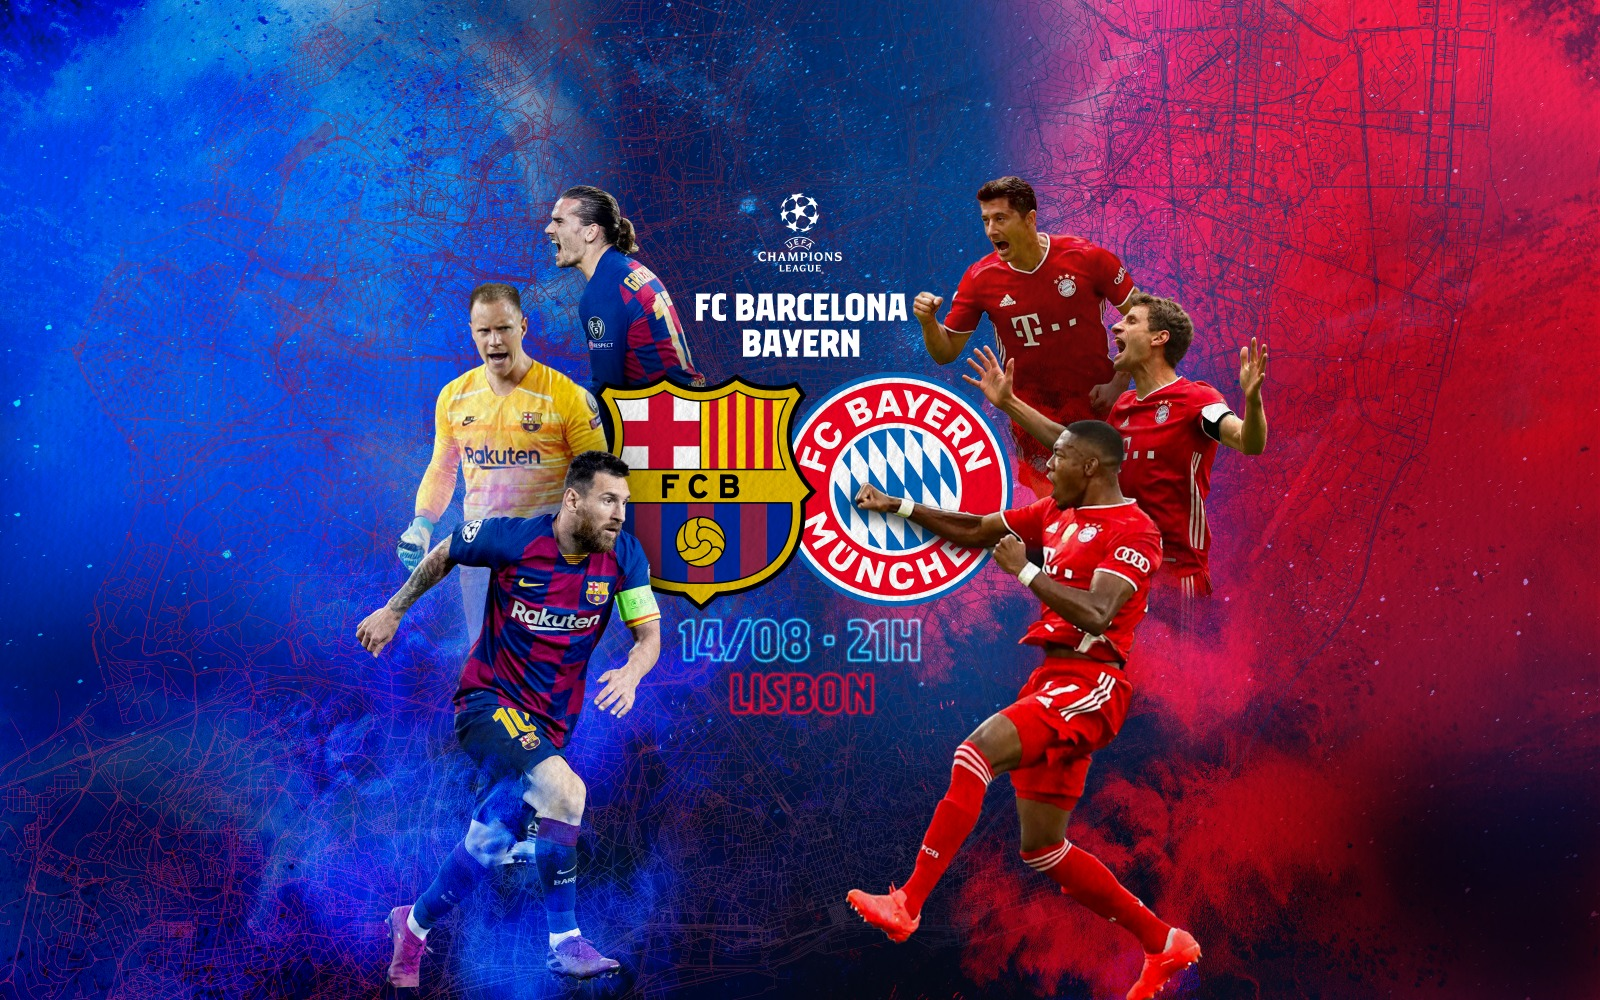 Next up, Bayern Munich